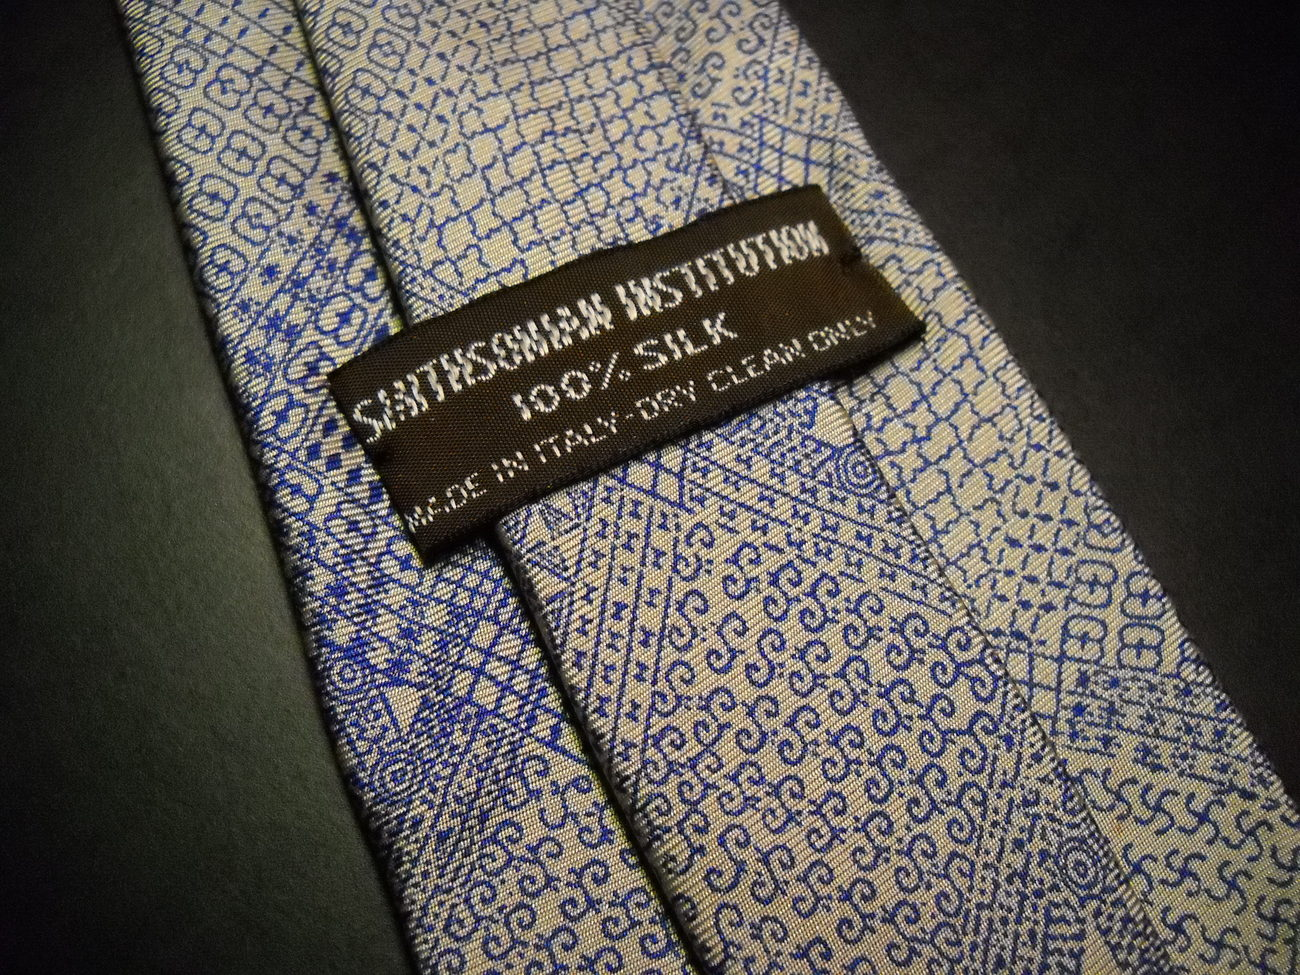 Smithsonian Institution Neck Tie Made in Italy Greys and Blues Sheen Vintage?